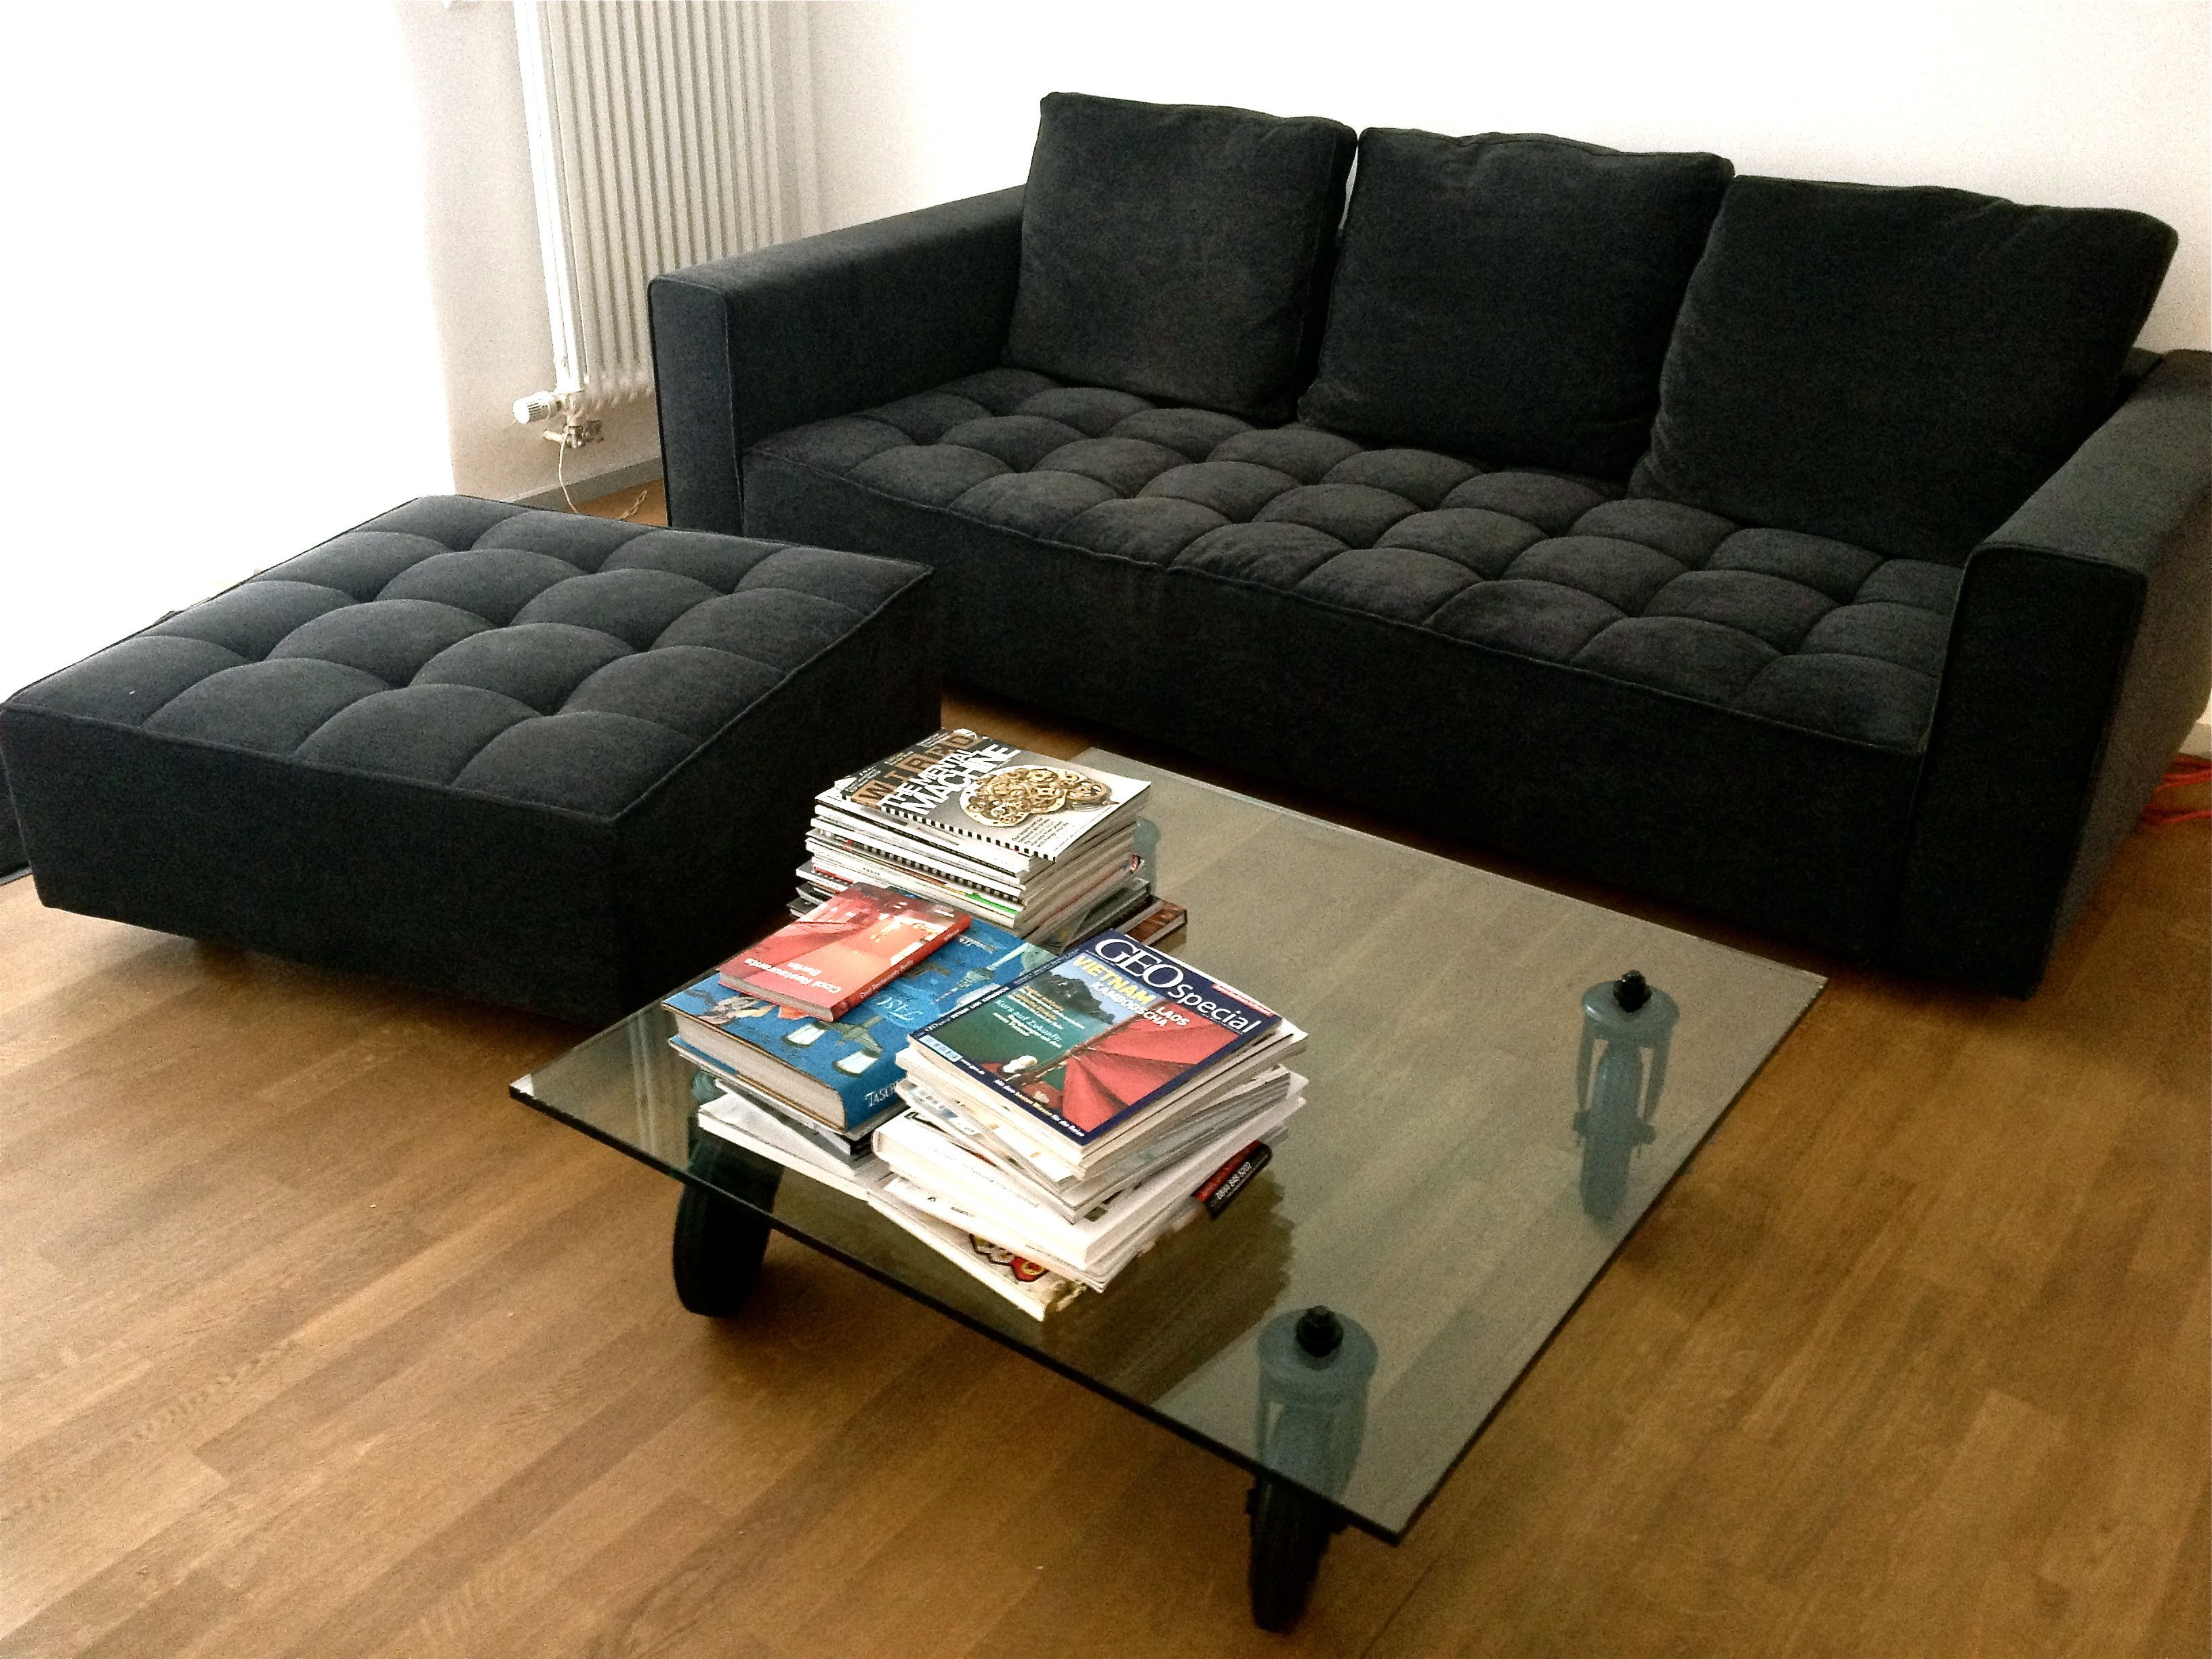 There it is Sofa Kilt by Zanotta Table Tavolo con Ruote by